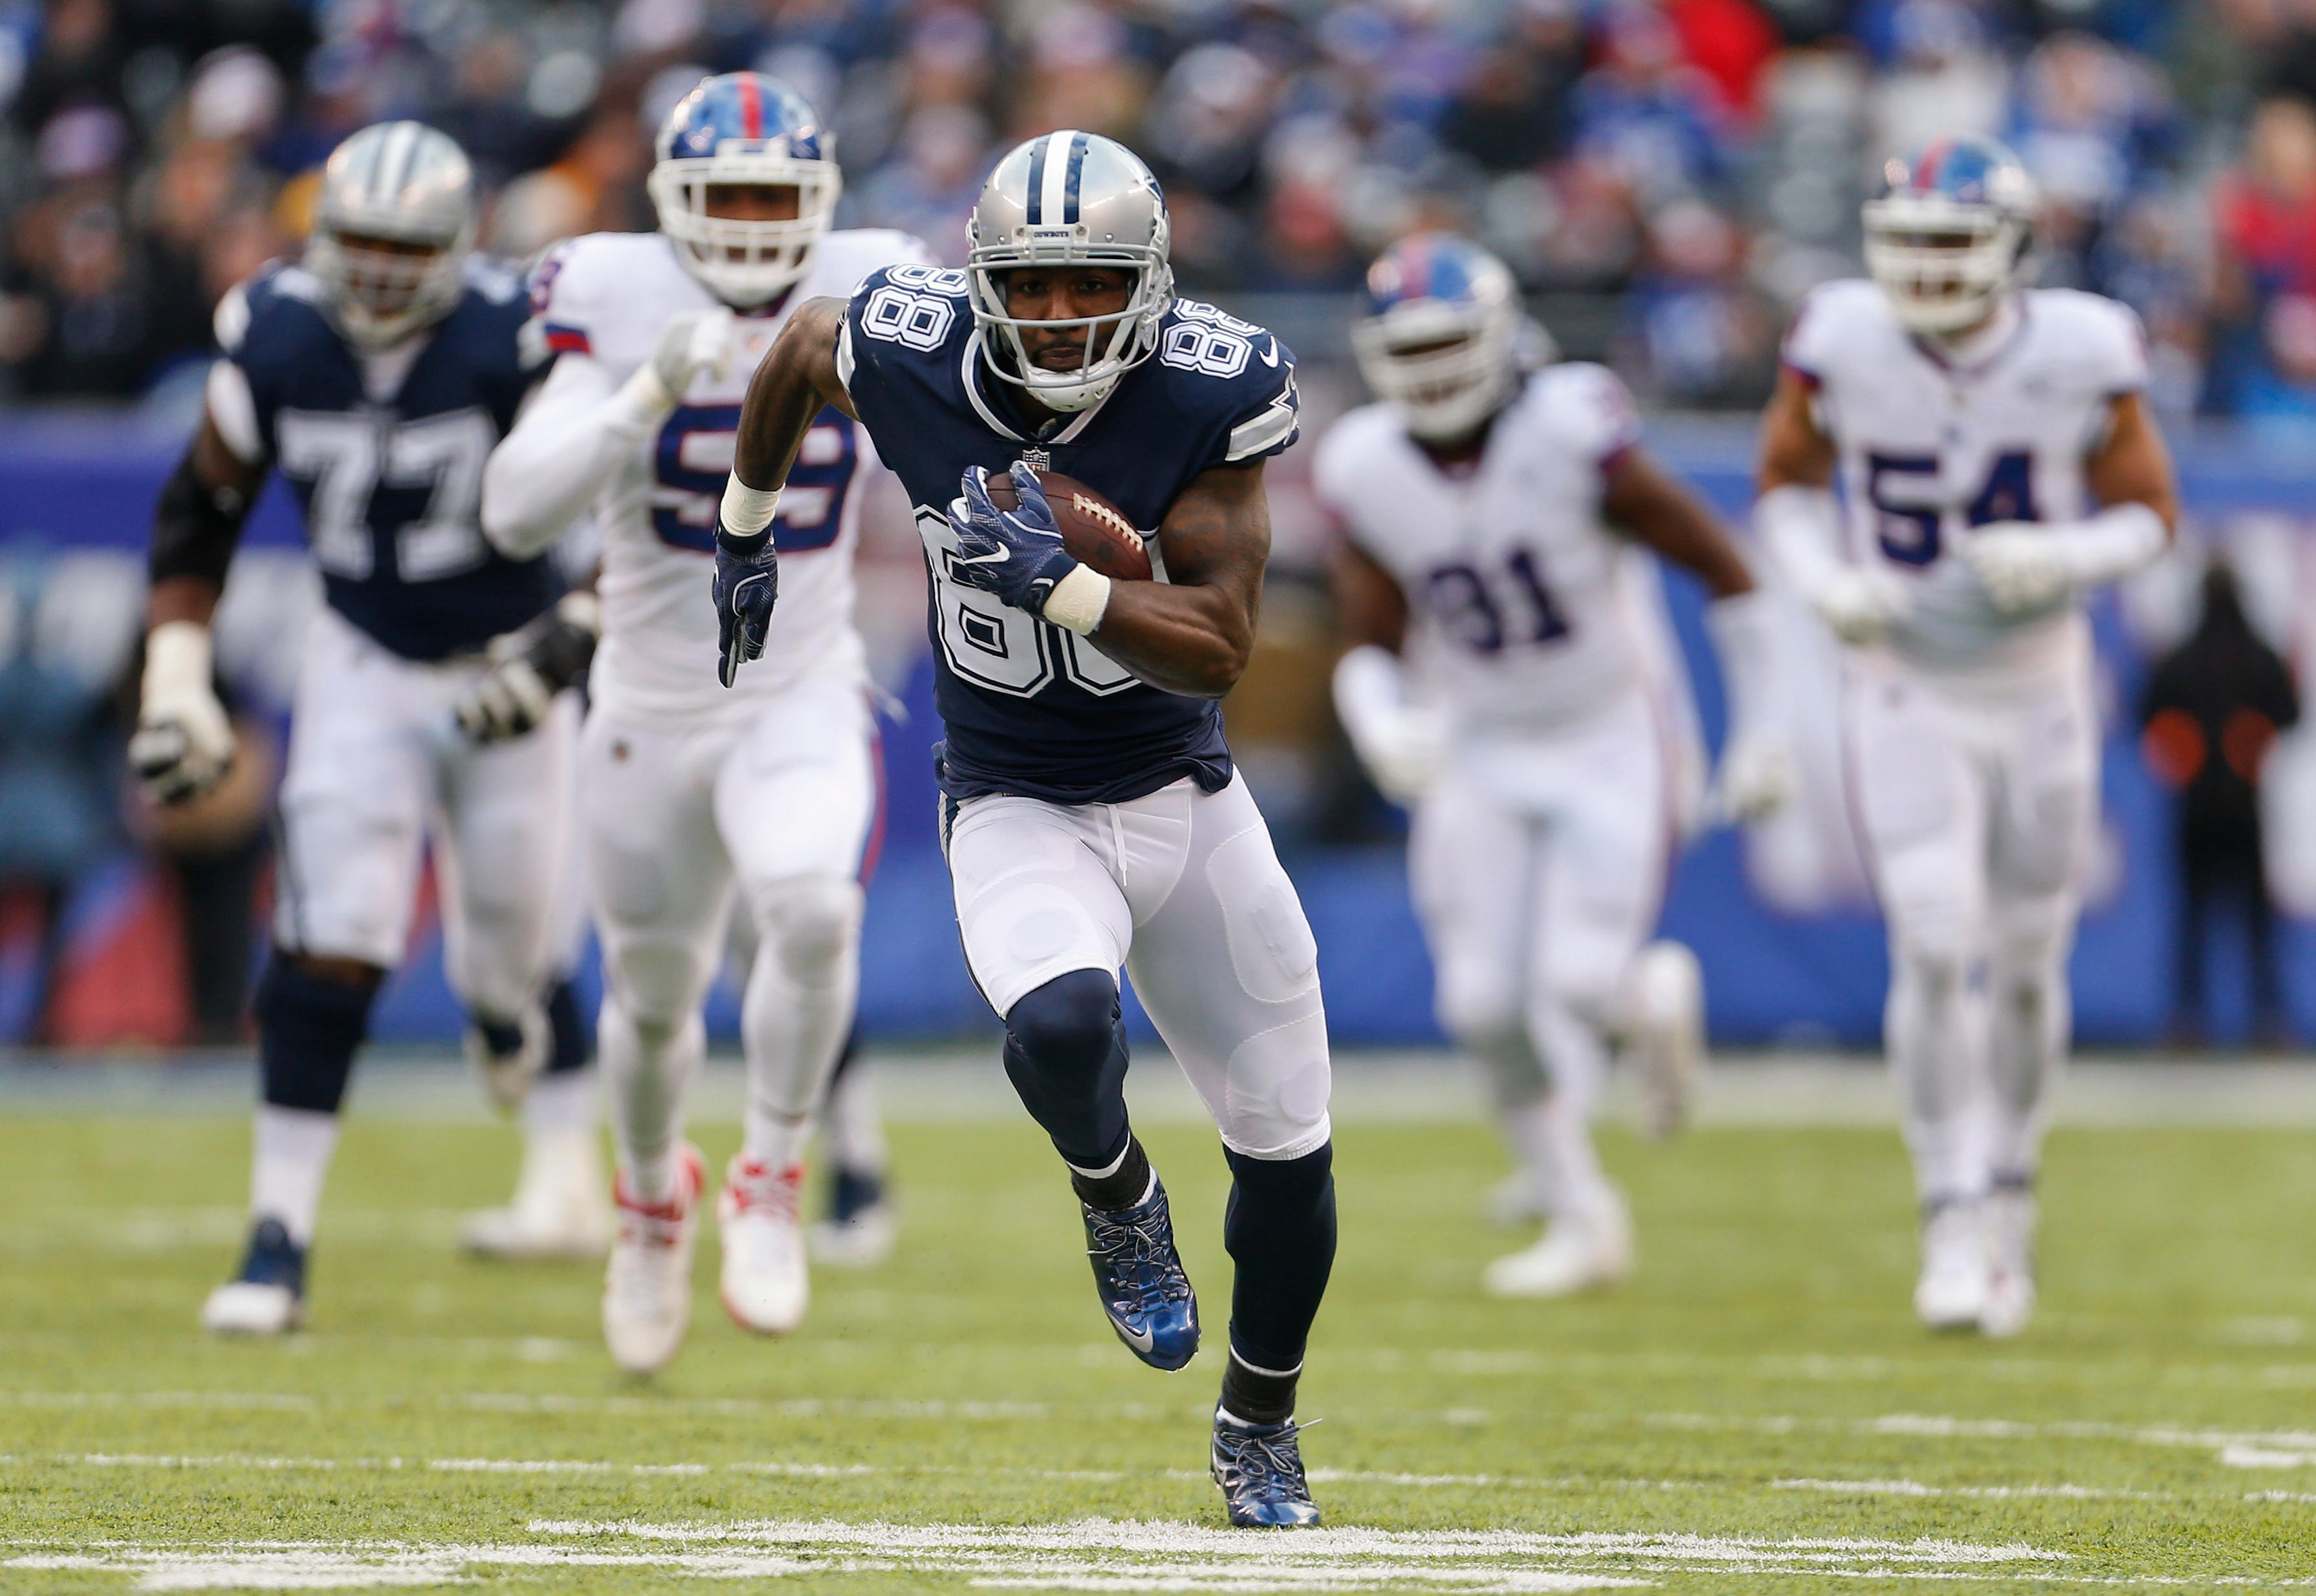 Dallas Cowboys wide receiver Dez Bryant (88) runs for a touchdown against the New York Giants during the second quarter of an NFL football game, Sunday, Dec. 10, 2017, in East Rutherford, N.J. (AP Photo/Adam Hunger)